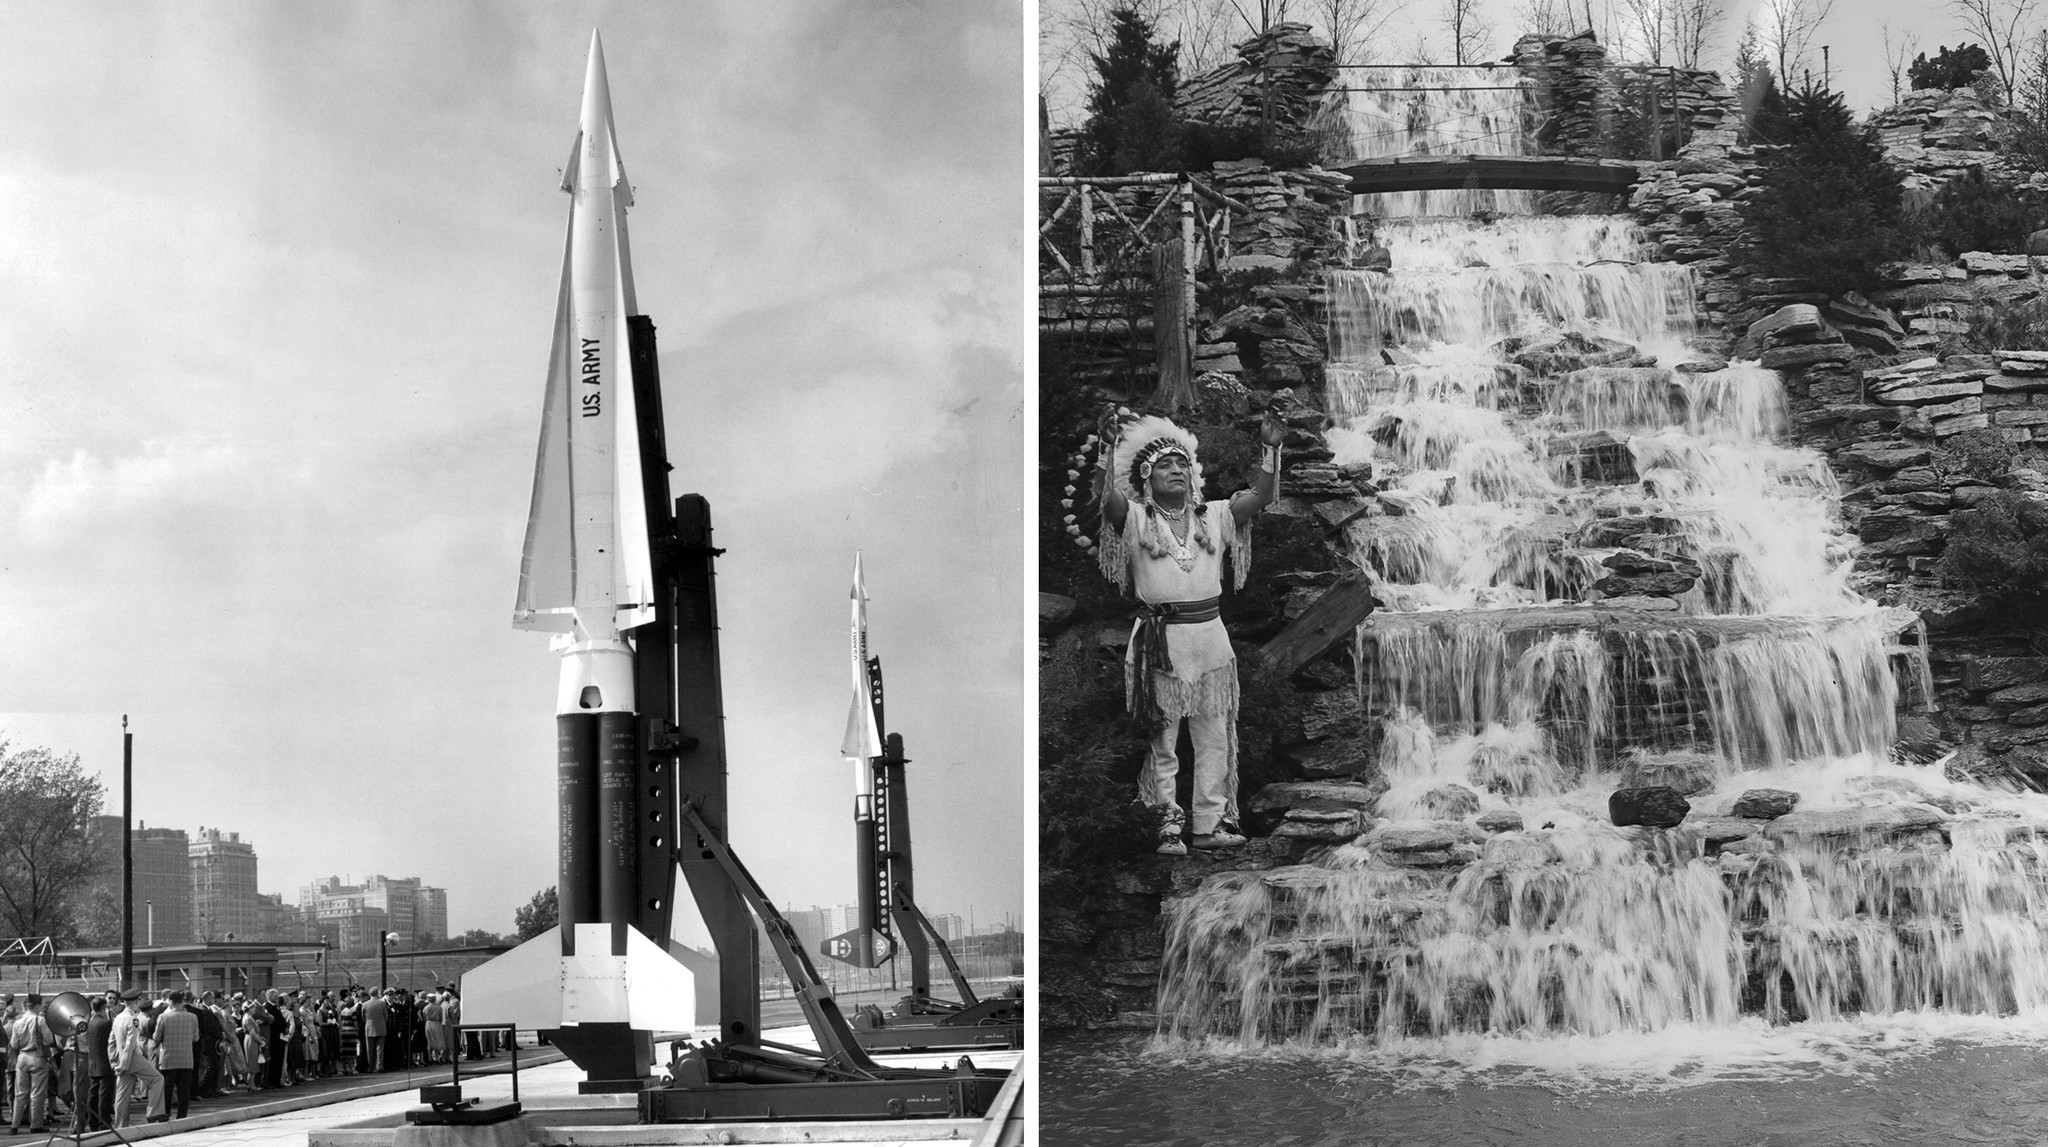 Ask Rick: Former Nike missile bases on our lake, a rug company's waterfall and other weirdness